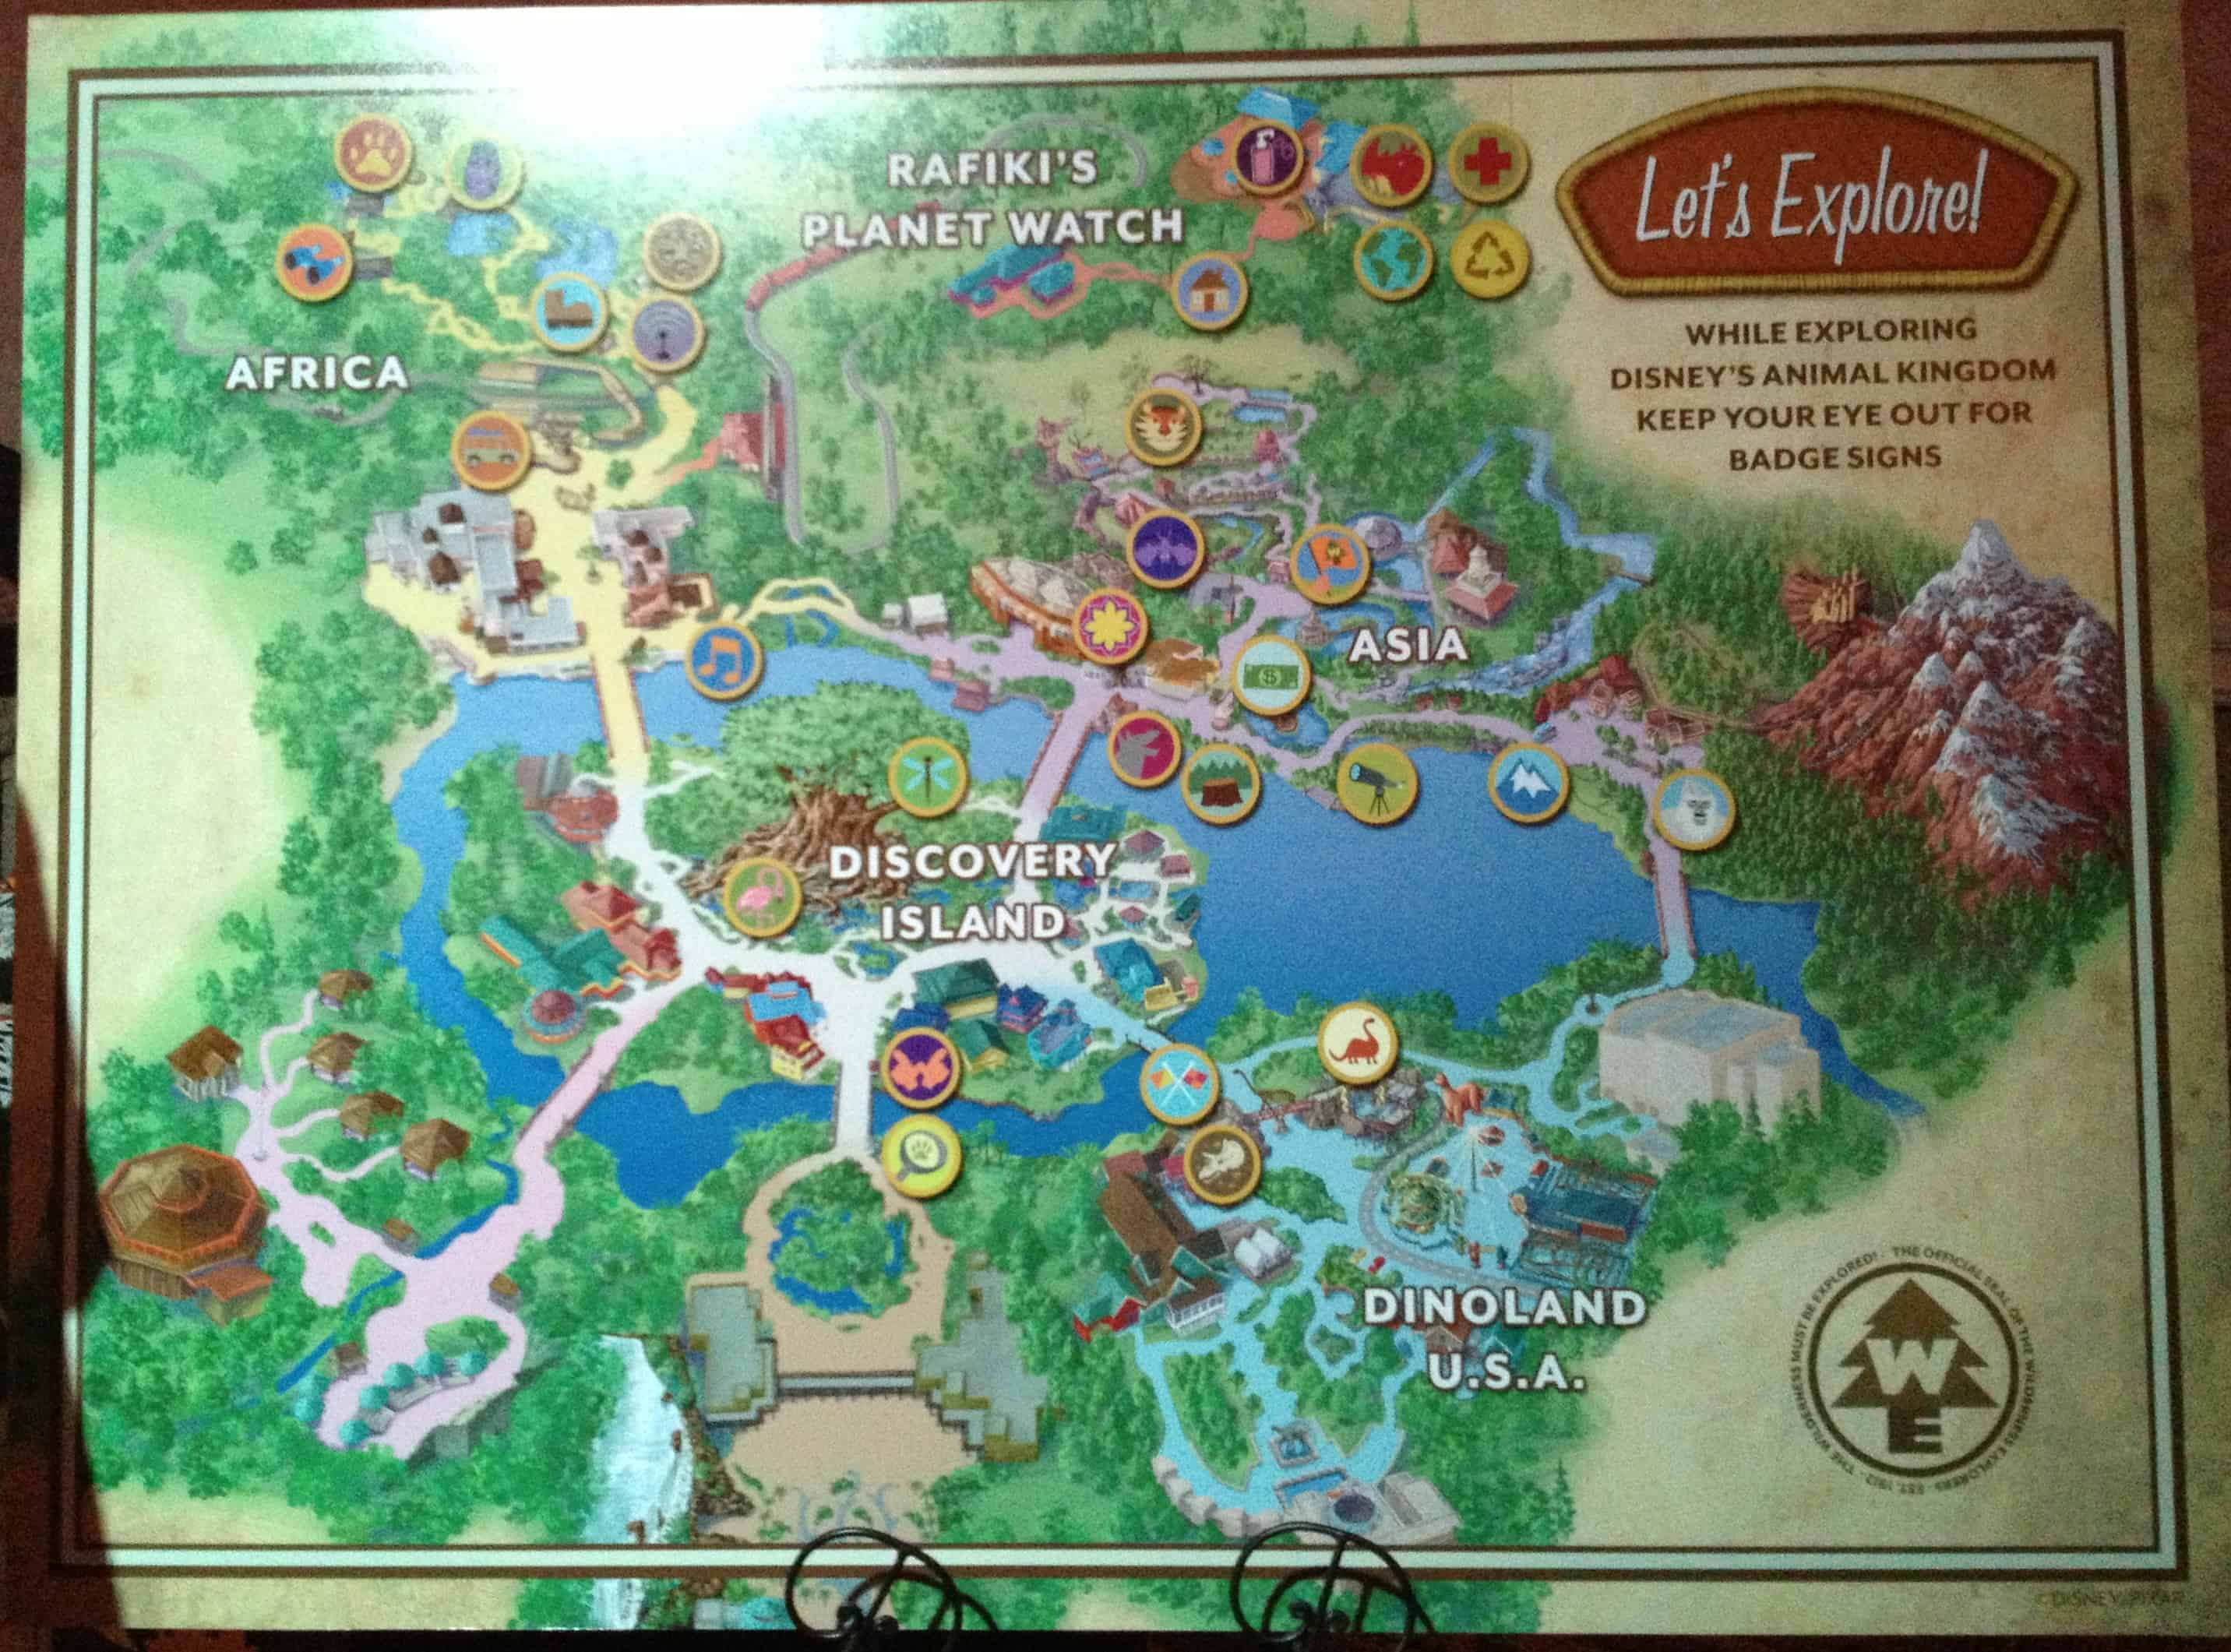 New Wilderness Explorers Activity to Debut Soon at Disney's Animal Kingdom